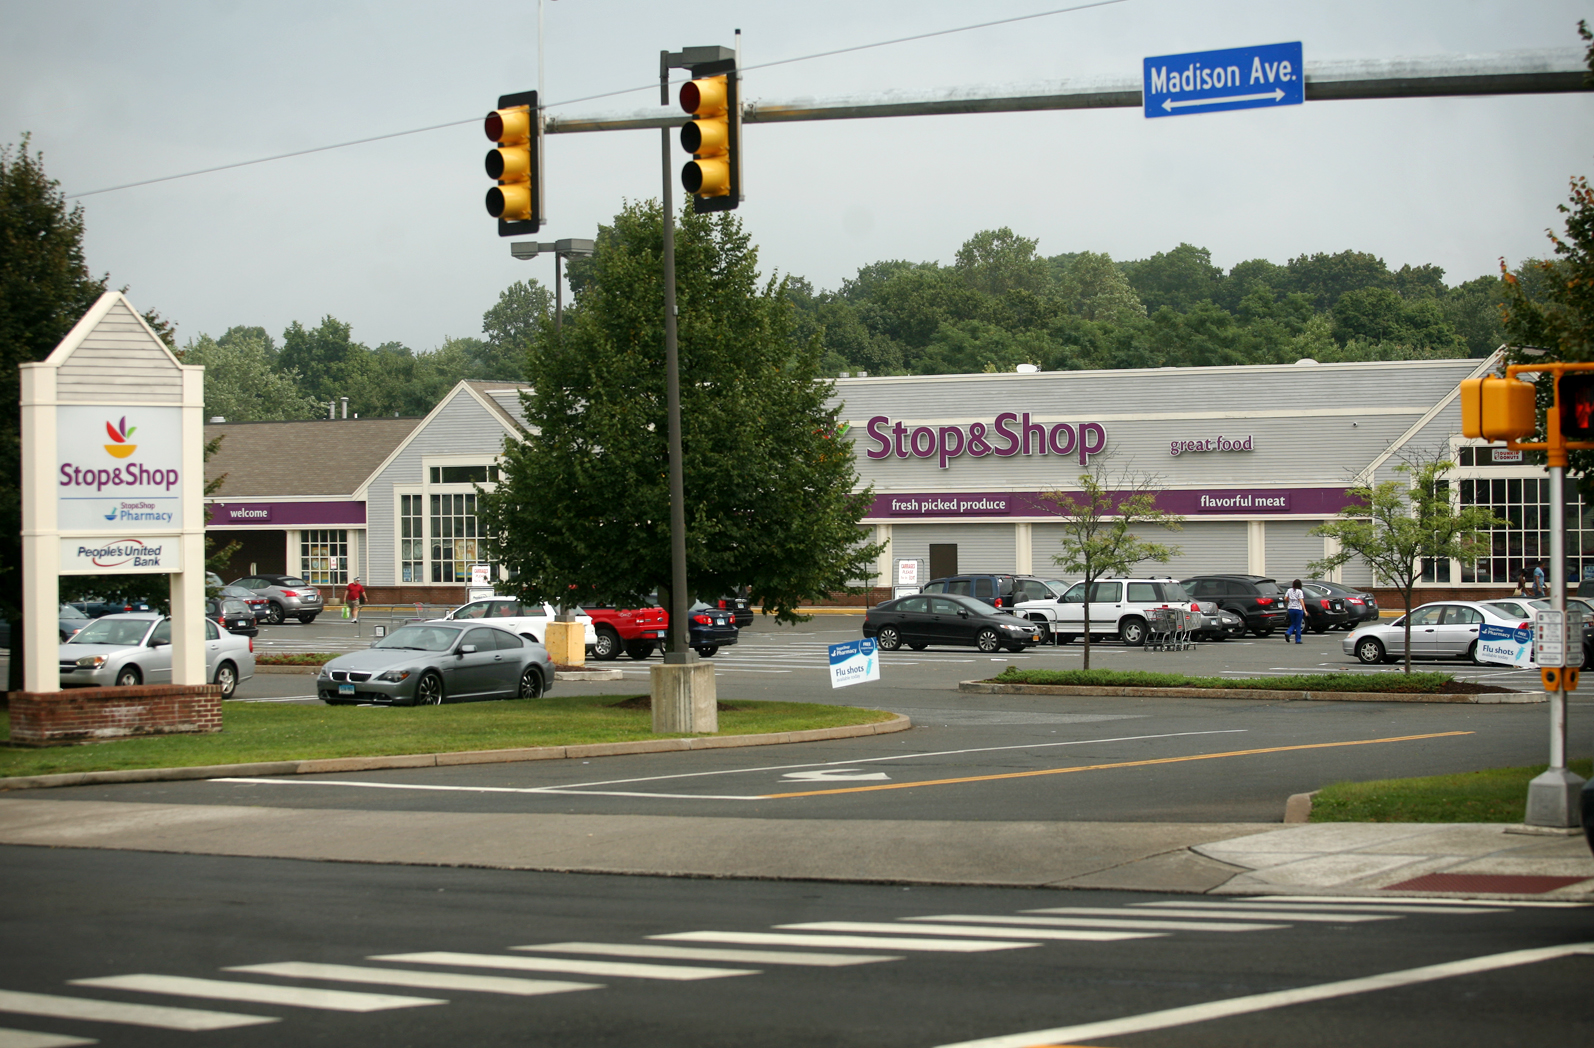 hours foreclose also sales outlet pharmacy